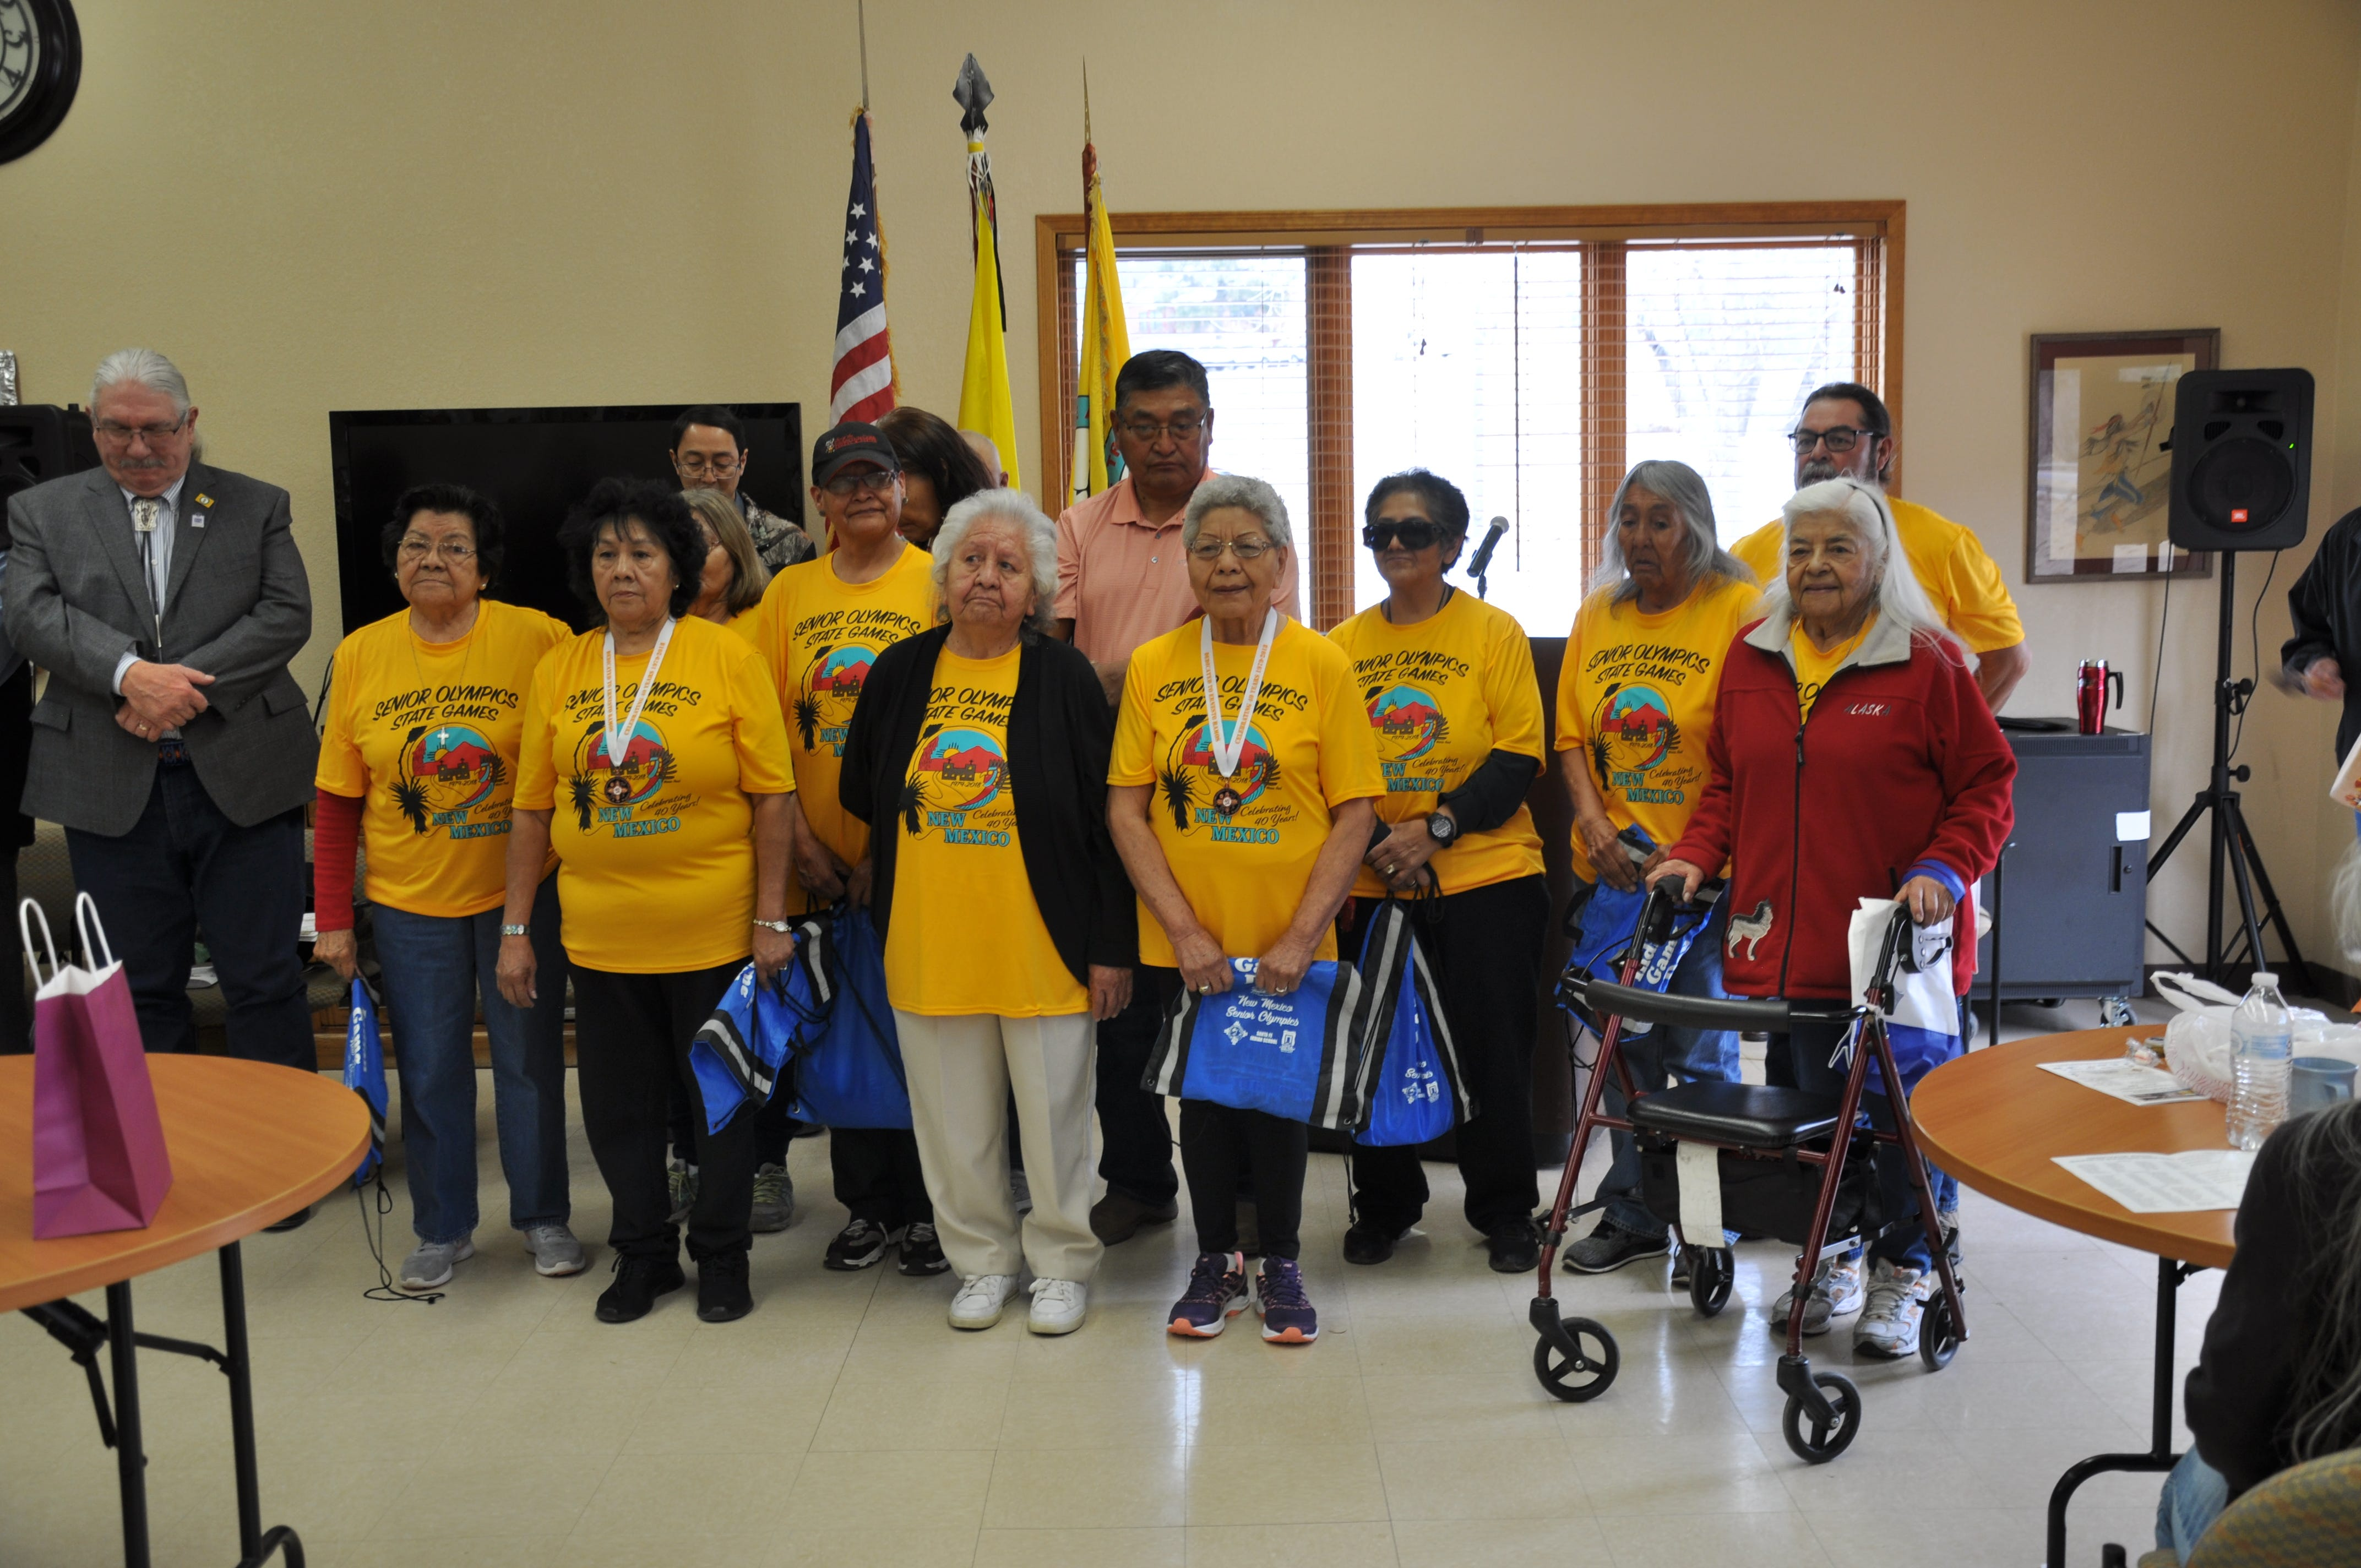 Participants of the Senior Olympics from the Mescalero Apache Tribe during the torch relay event this month.